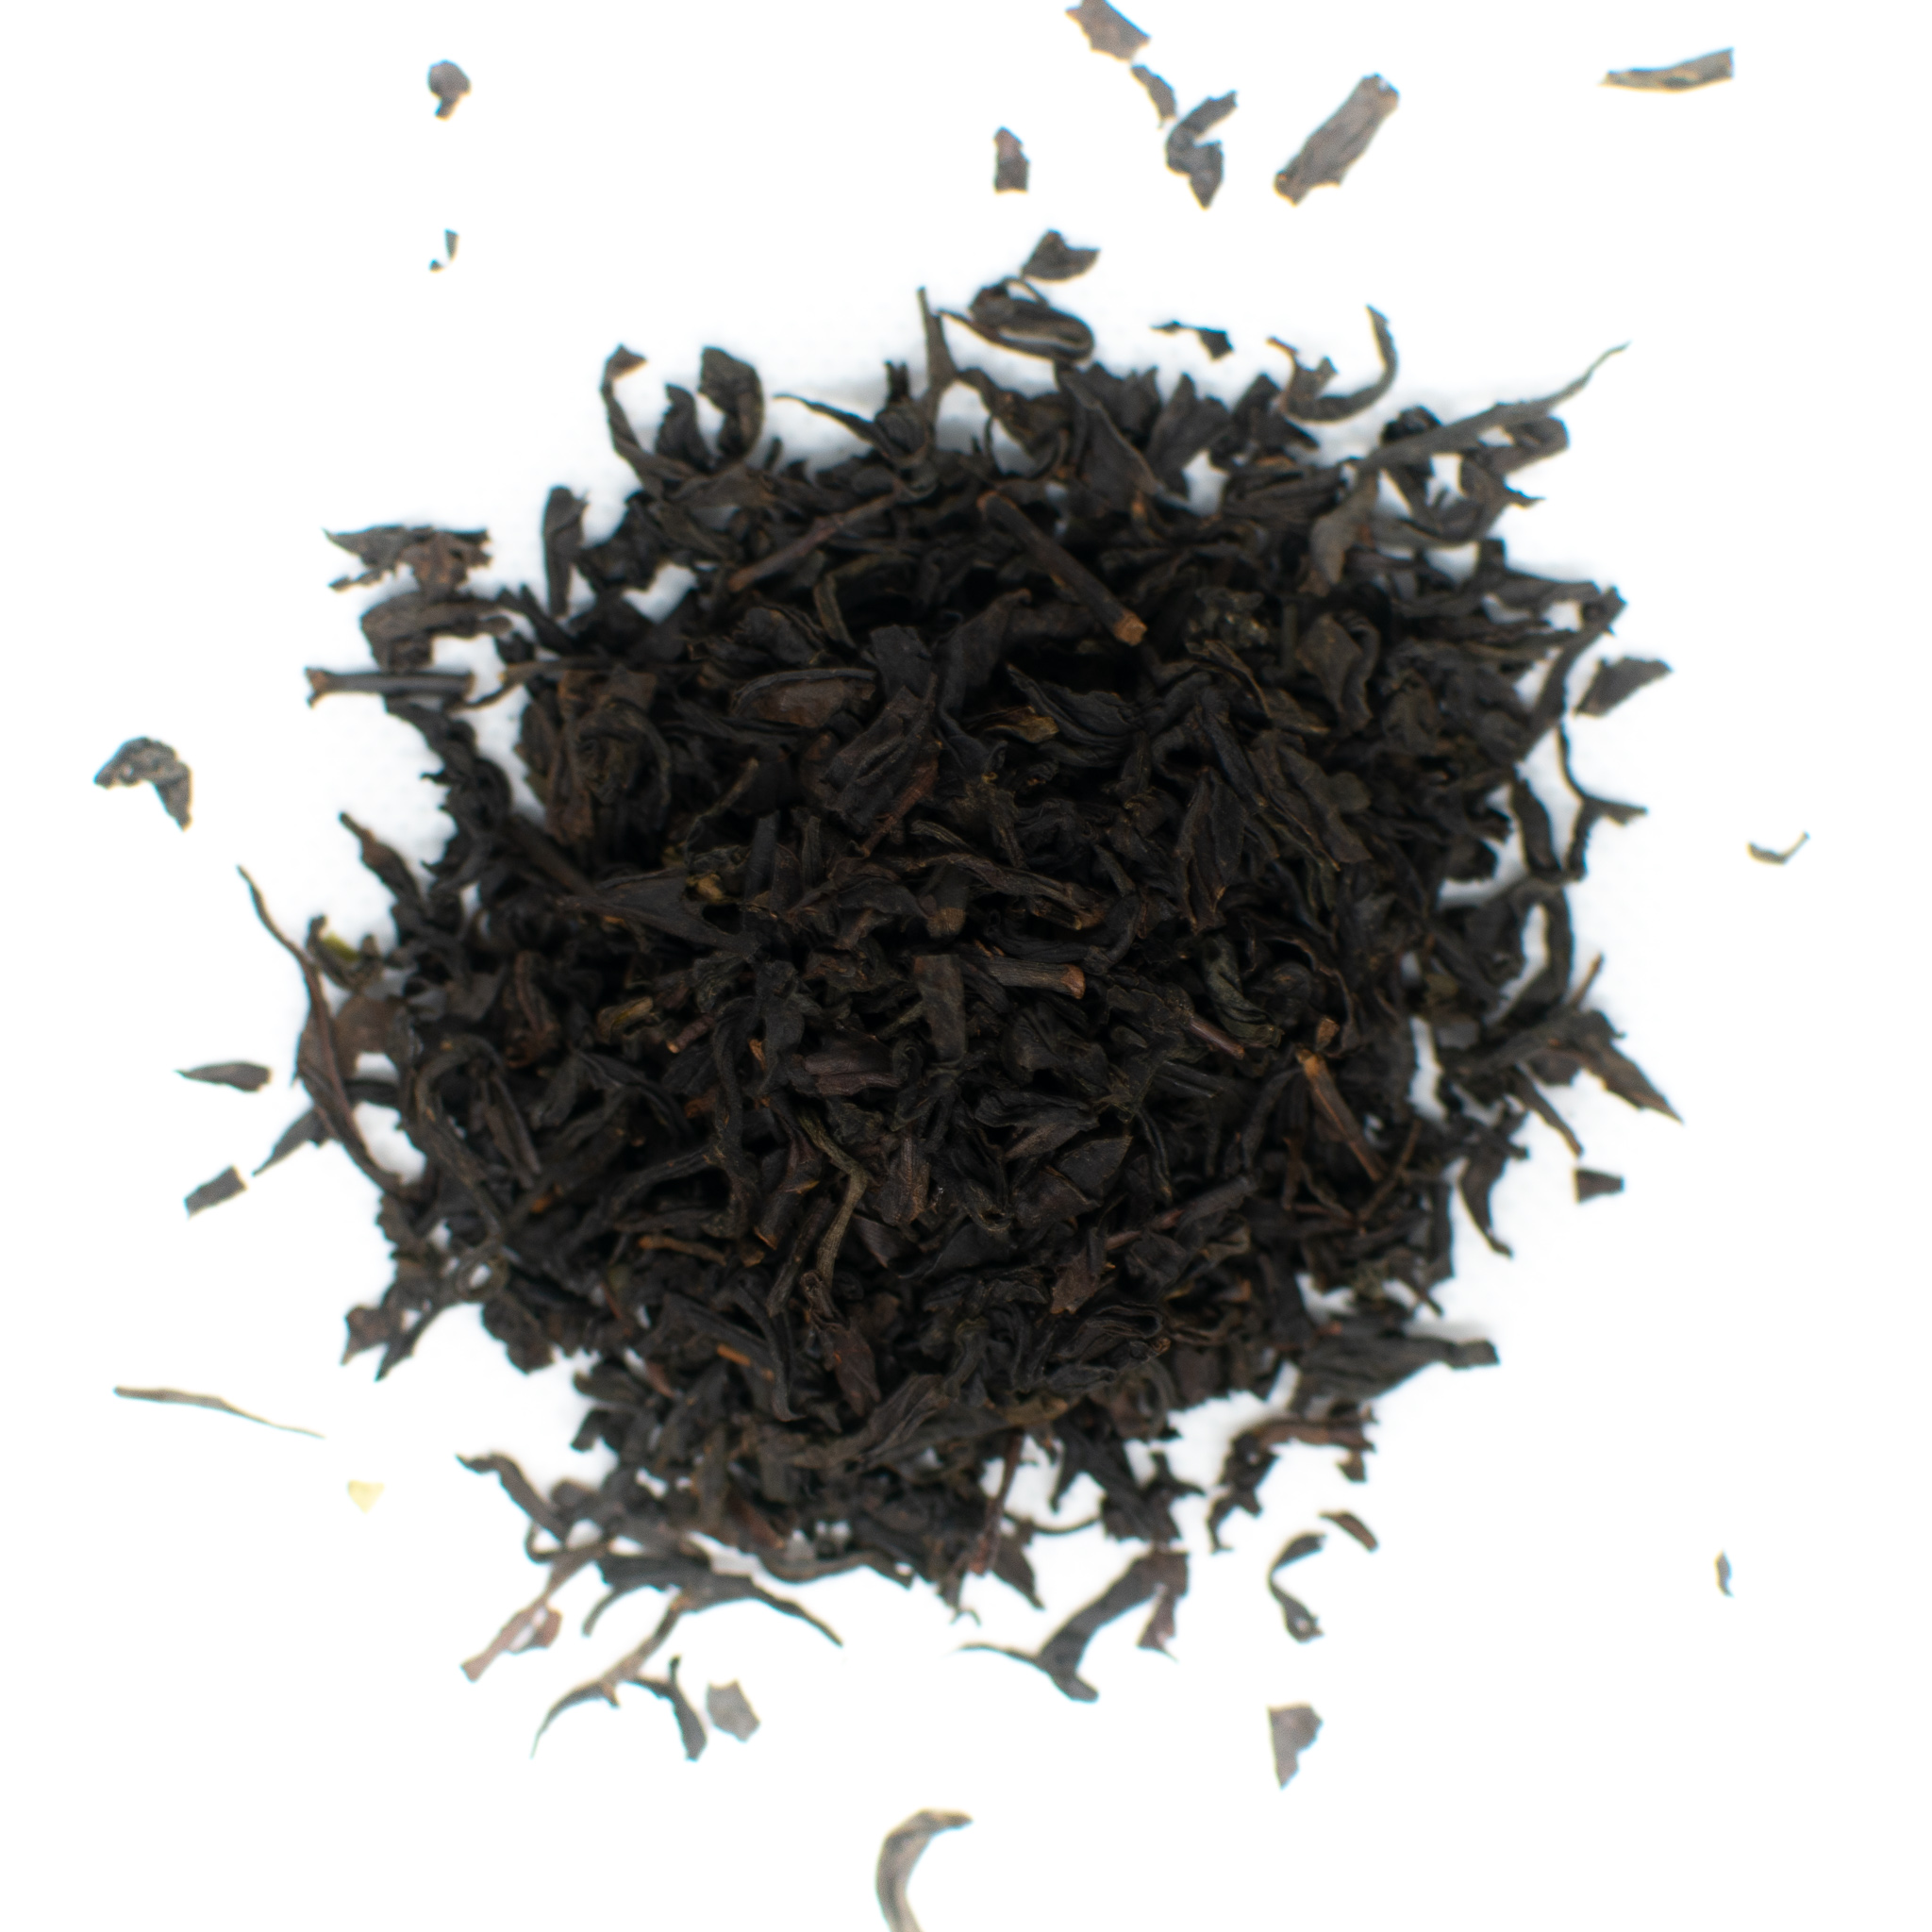 Discover Assam Black Tea: The History Behind This Malty